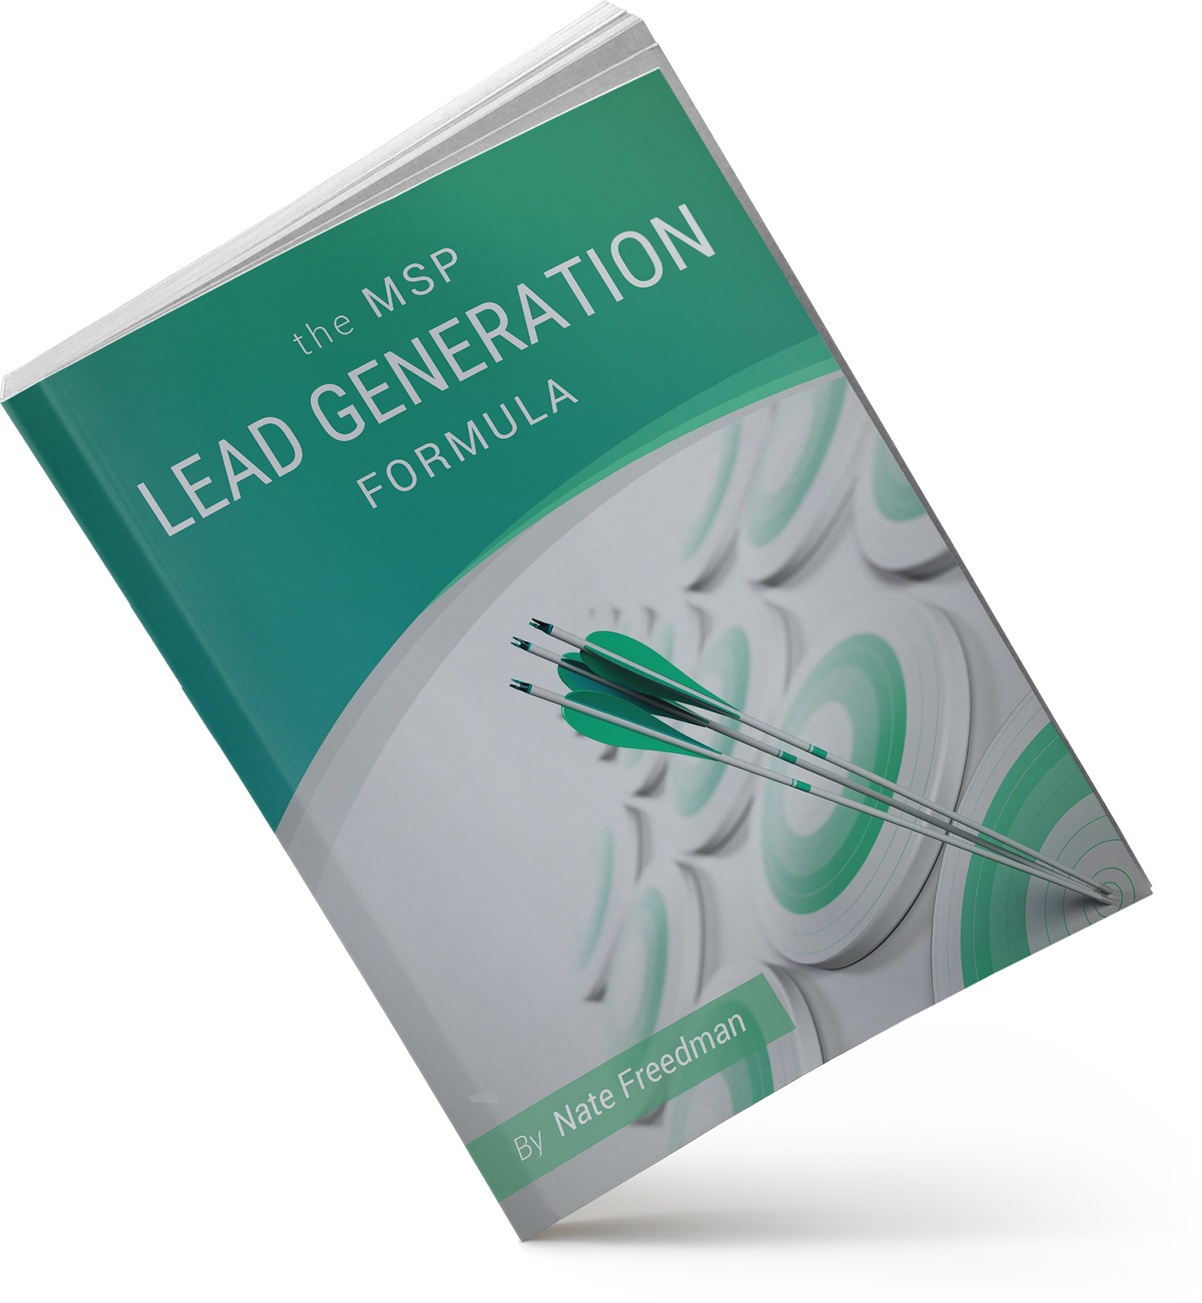 lead-generation-ebook-image